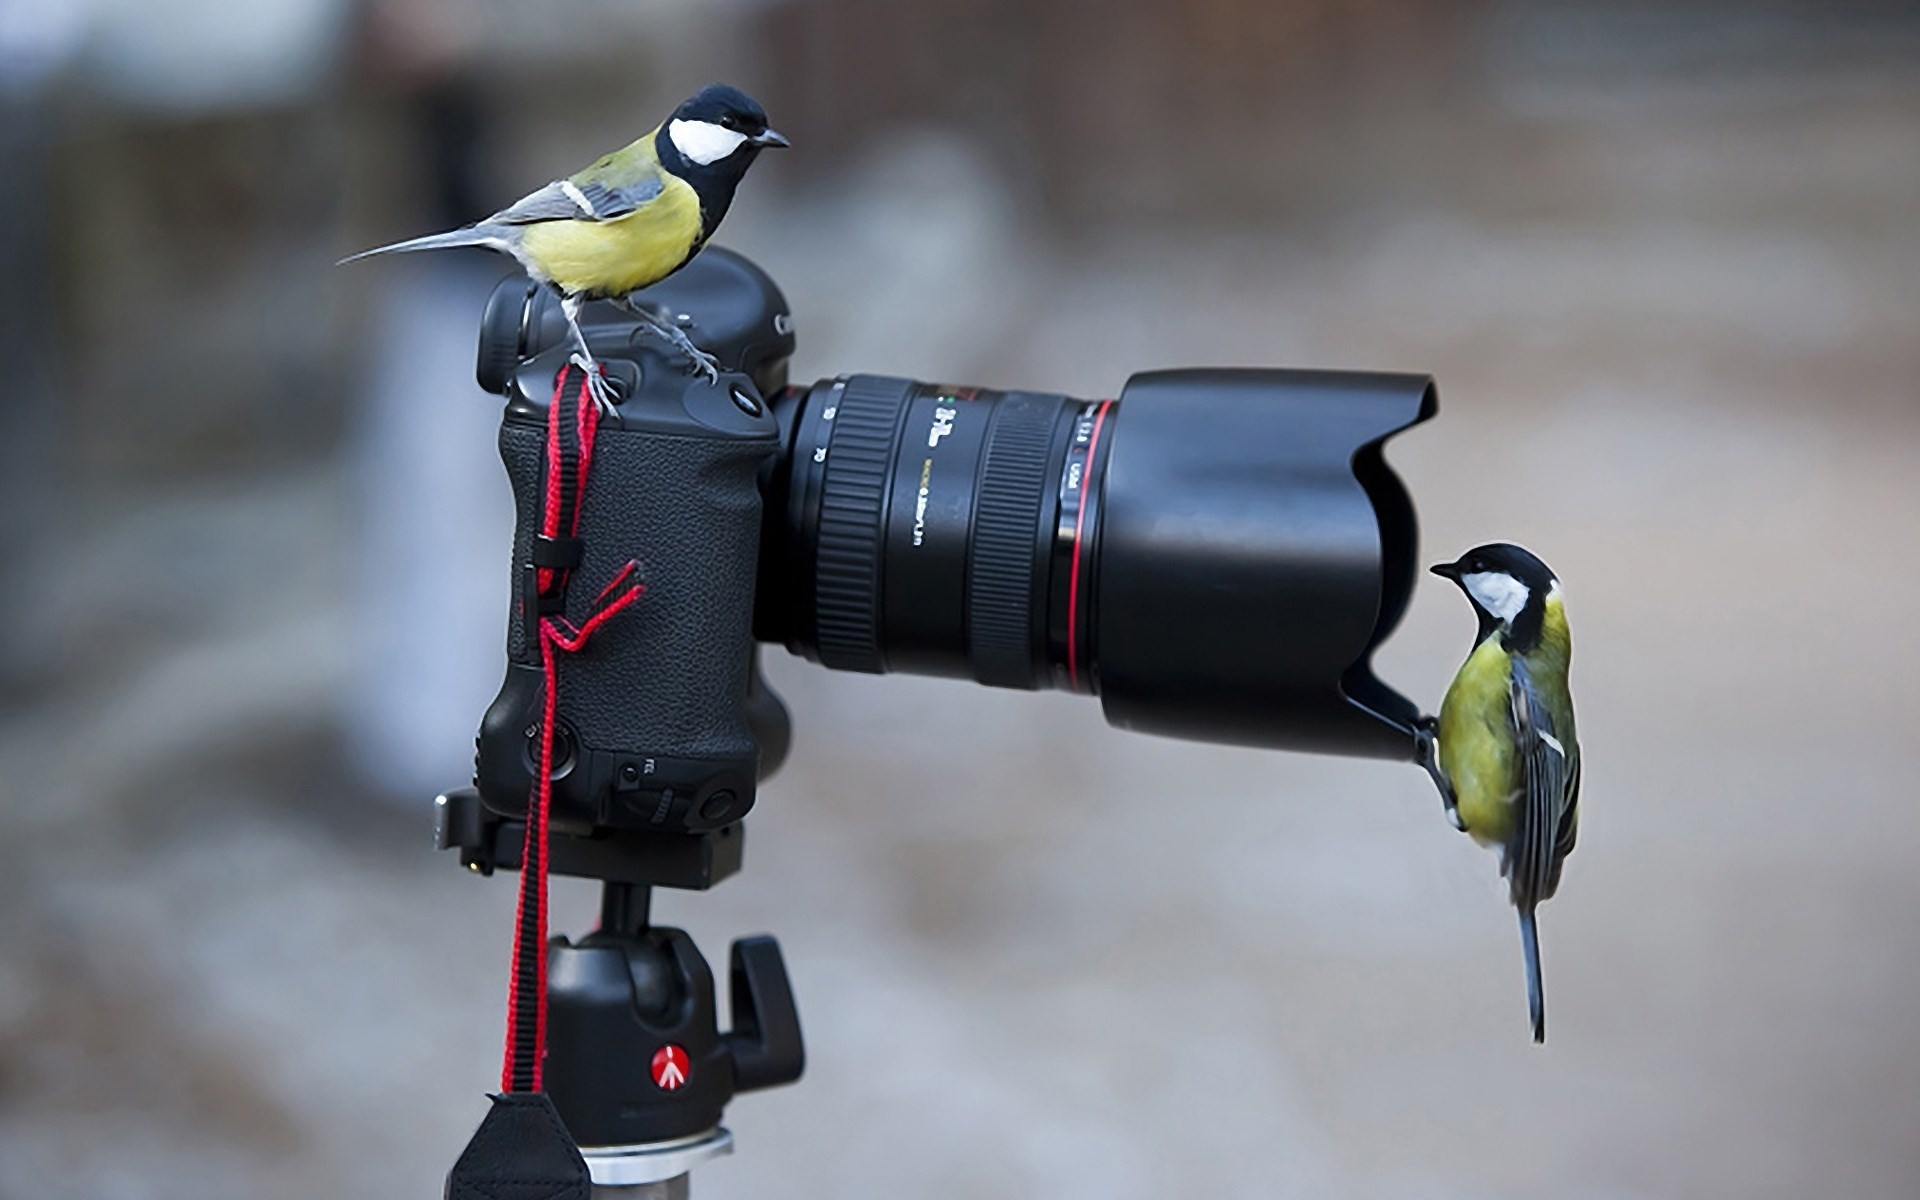 Camera Wallpapers High Quality Download Free